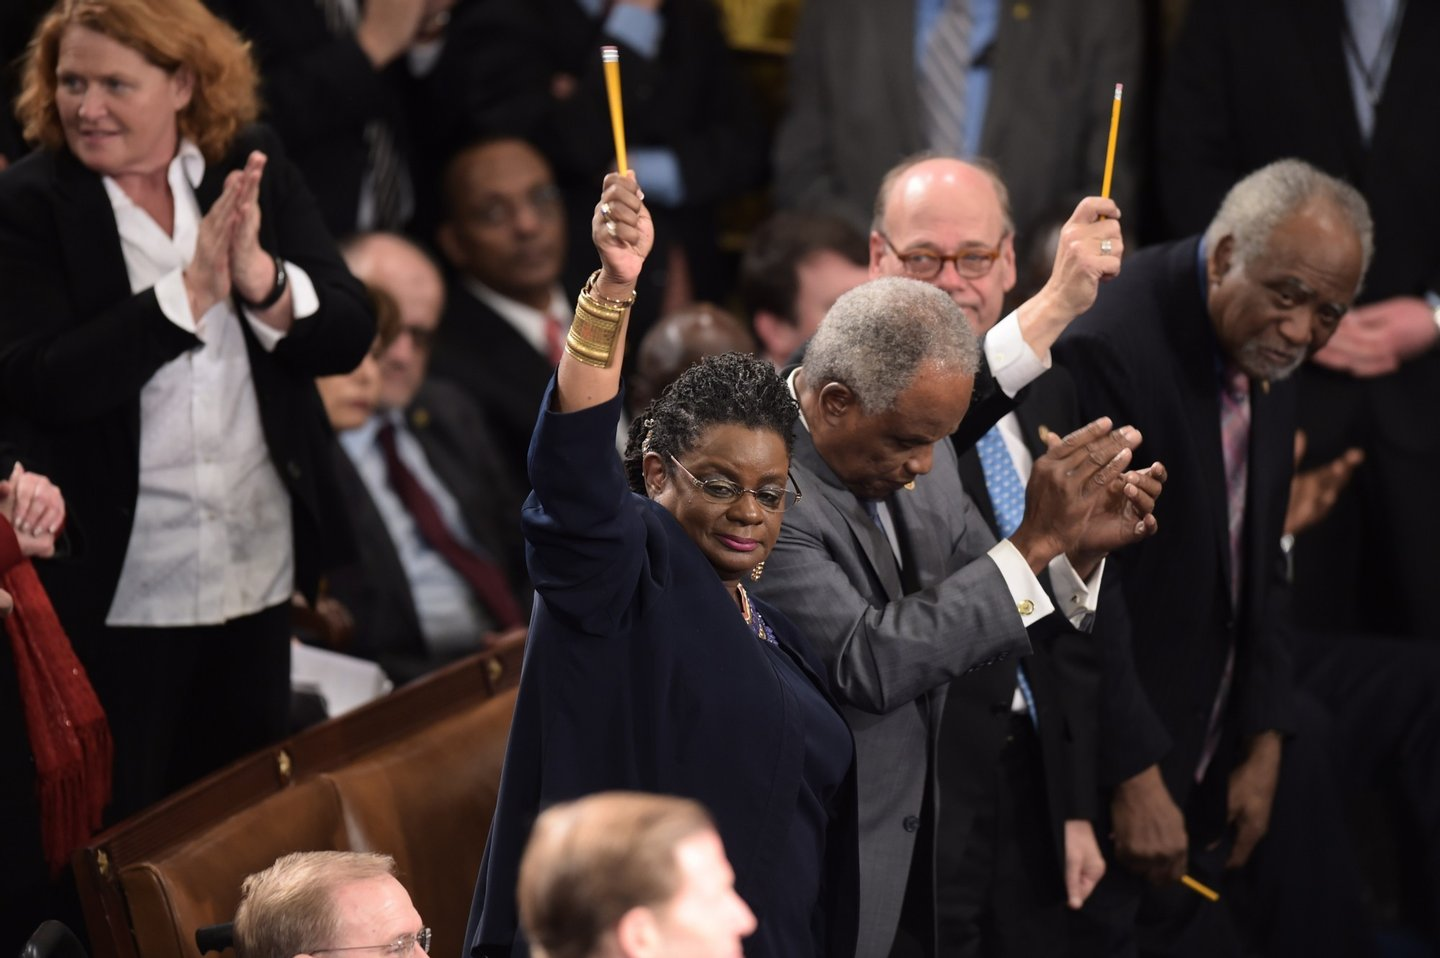 US lawmakers pay tribute to the victims of the Paris attacks by holding up pencils during the State of the Union address by US President Barack Obama, before a joint session of Congress on January 20, 2015 at the US Capitol in Washington, DC.   AFP PHOTO/JIM WATSON        (Photo credit should read JIM WATSON/AFP/Getty Images)